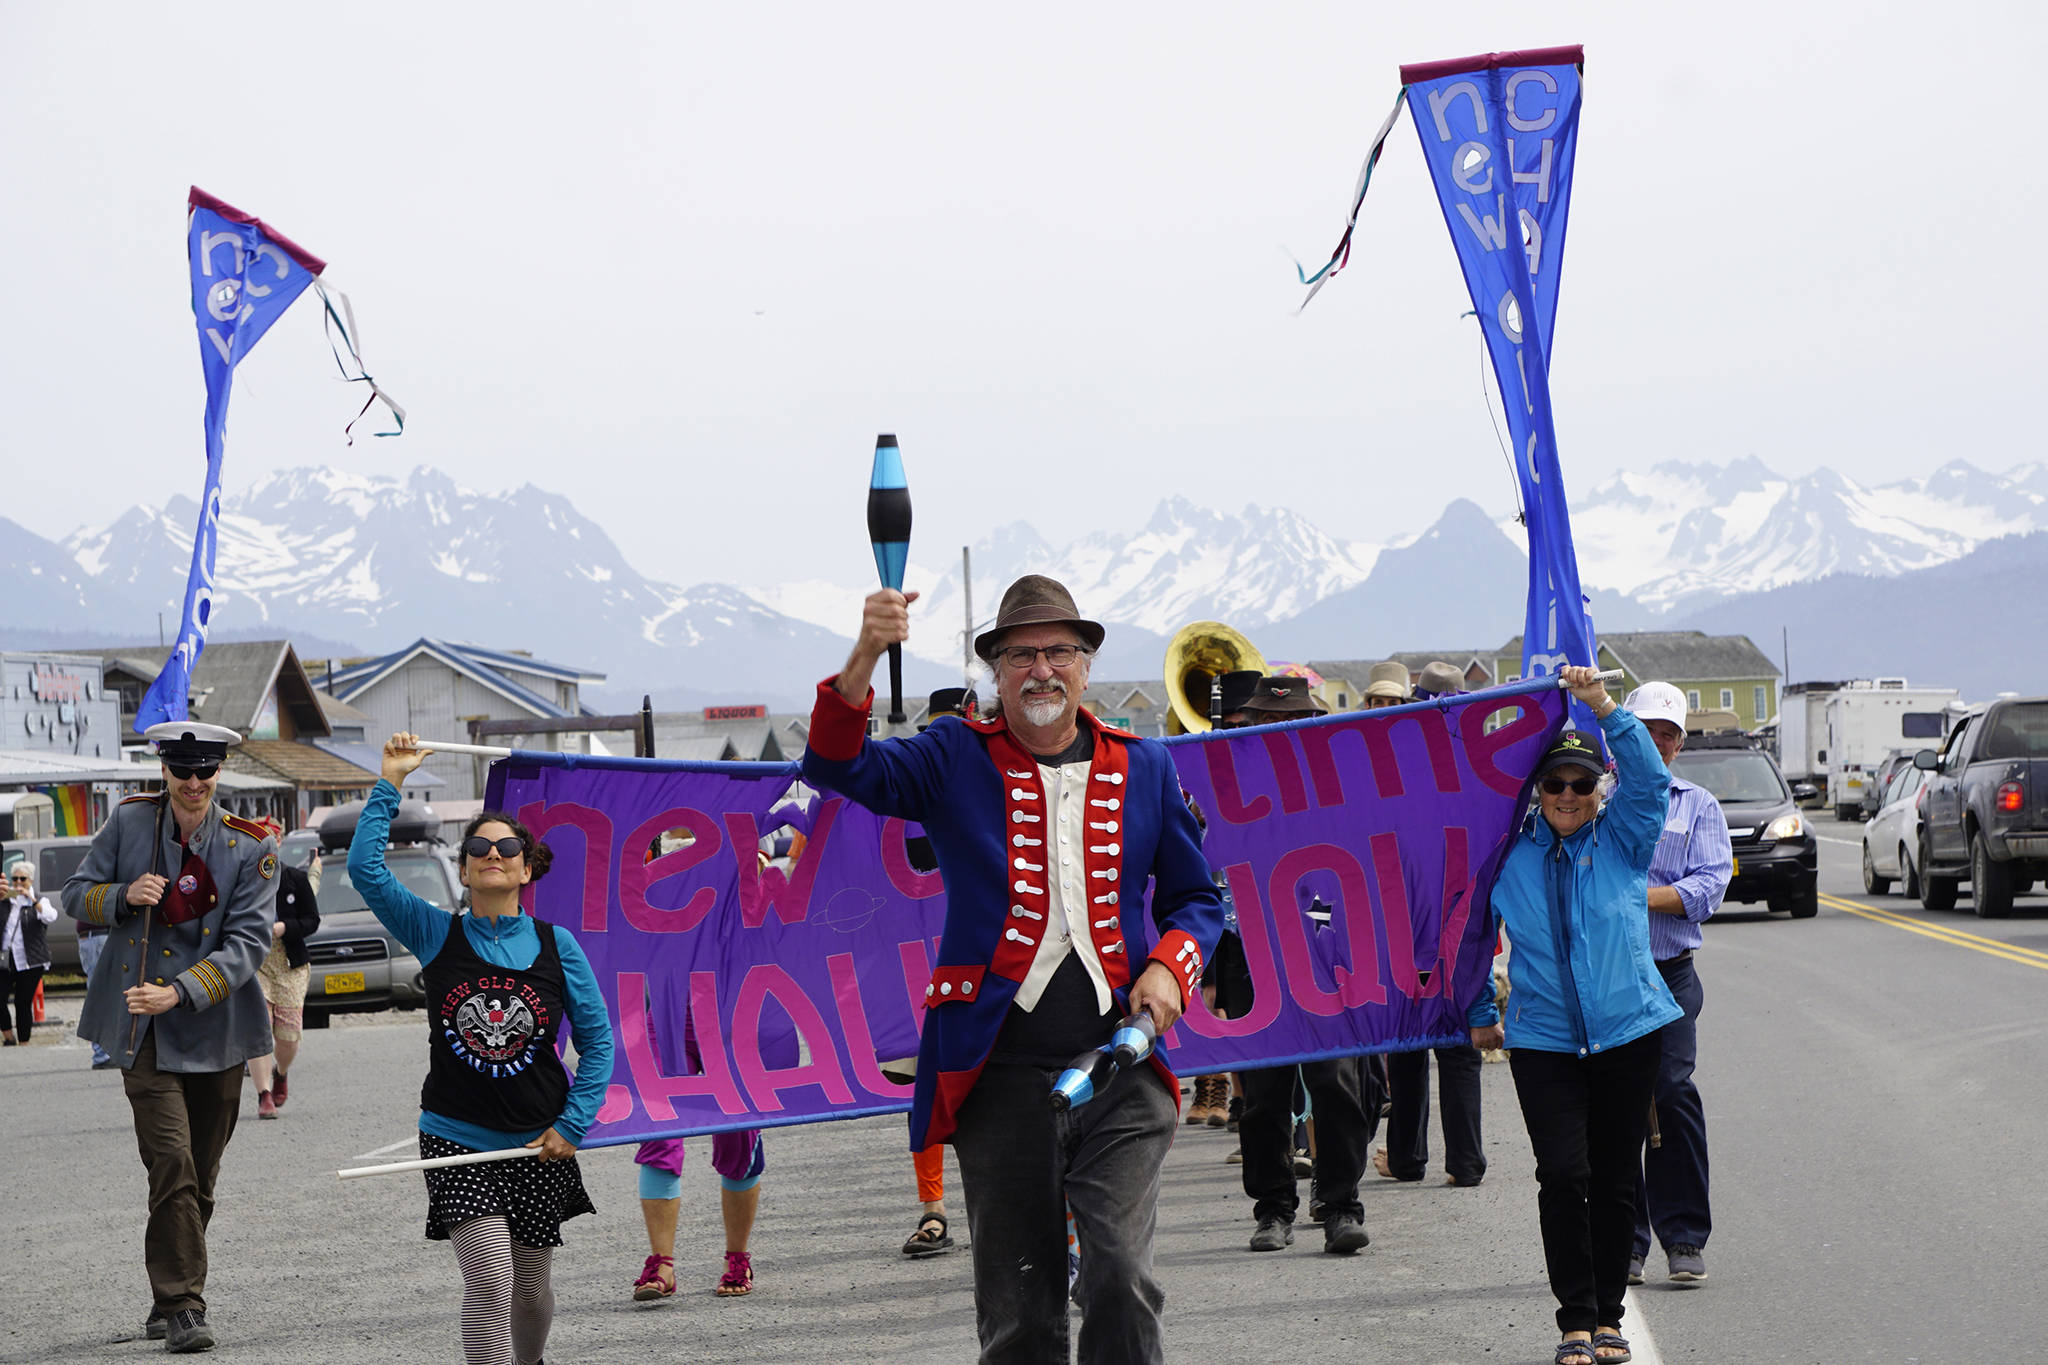 The New Old Time Chautauqua Fighting Instruments of Karma Marching Chamber Band Orchestra marches on the Homer Spit on July 2, 2019, in Homer, Alaska. The group visited Homer as part of a week-long tour partially funded by the Rasmuson Foundation's Harper Arts Touring Fund, administered by the Alaska State Council on the Arts — an example of state-foundation cooperation in arts funding. (Photo by Michael Armstrong/Homer News)